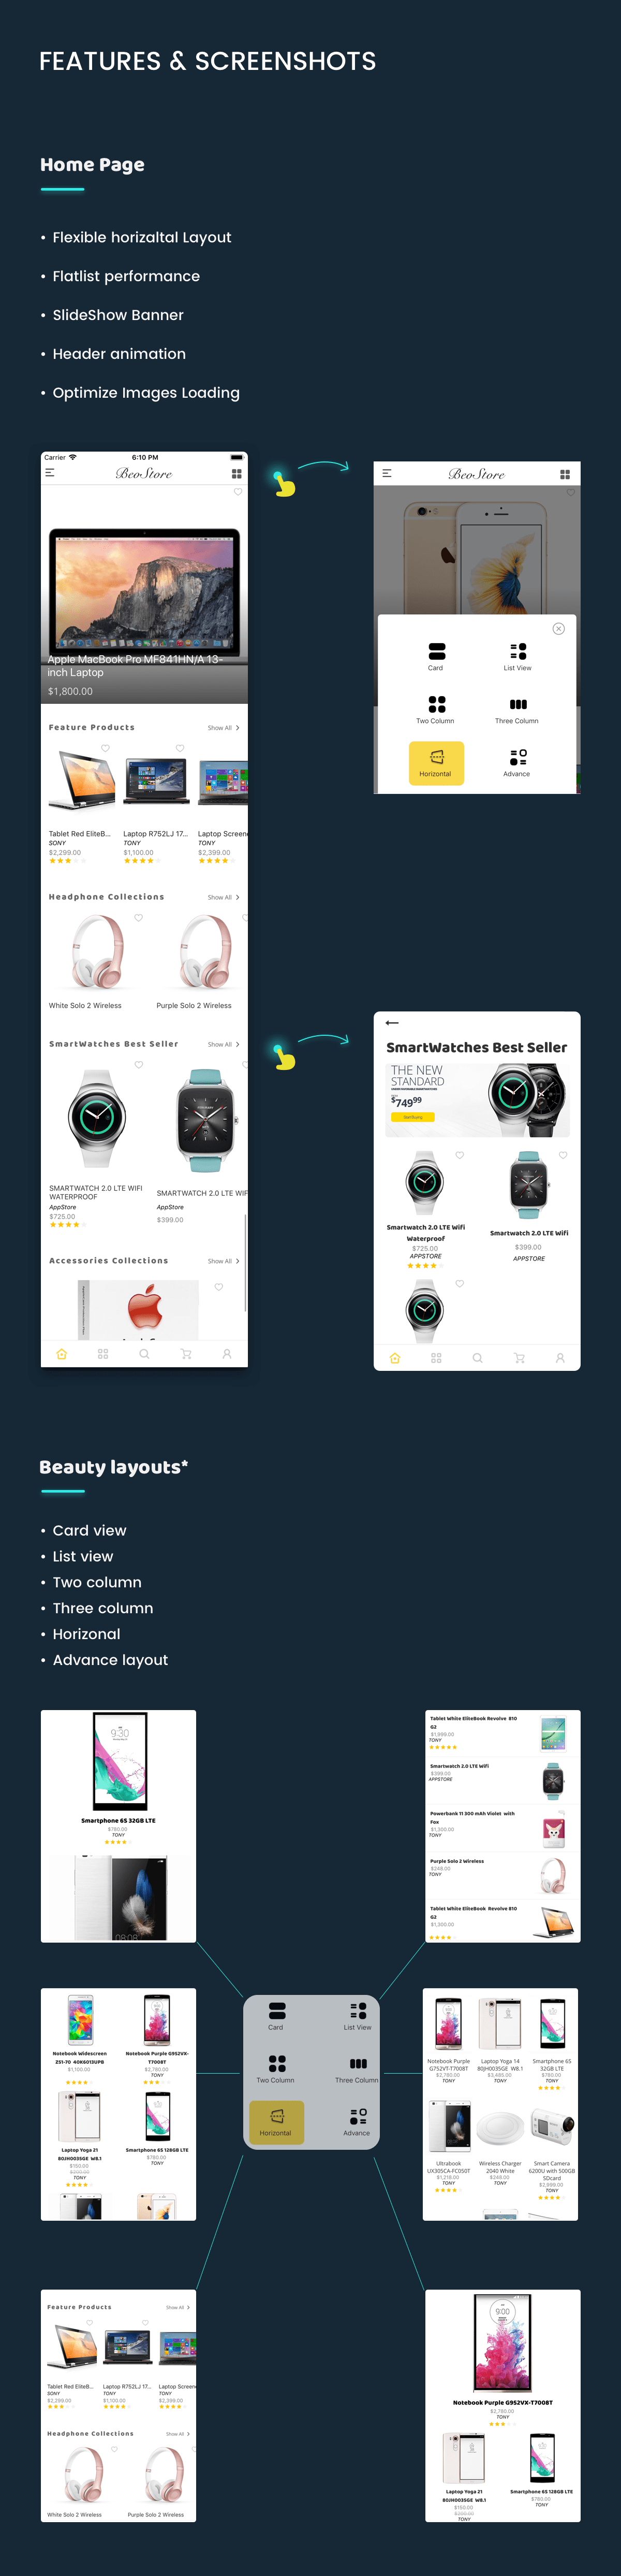 MStore Multi Vendor - Complete React Native template for WooCommerce - 17